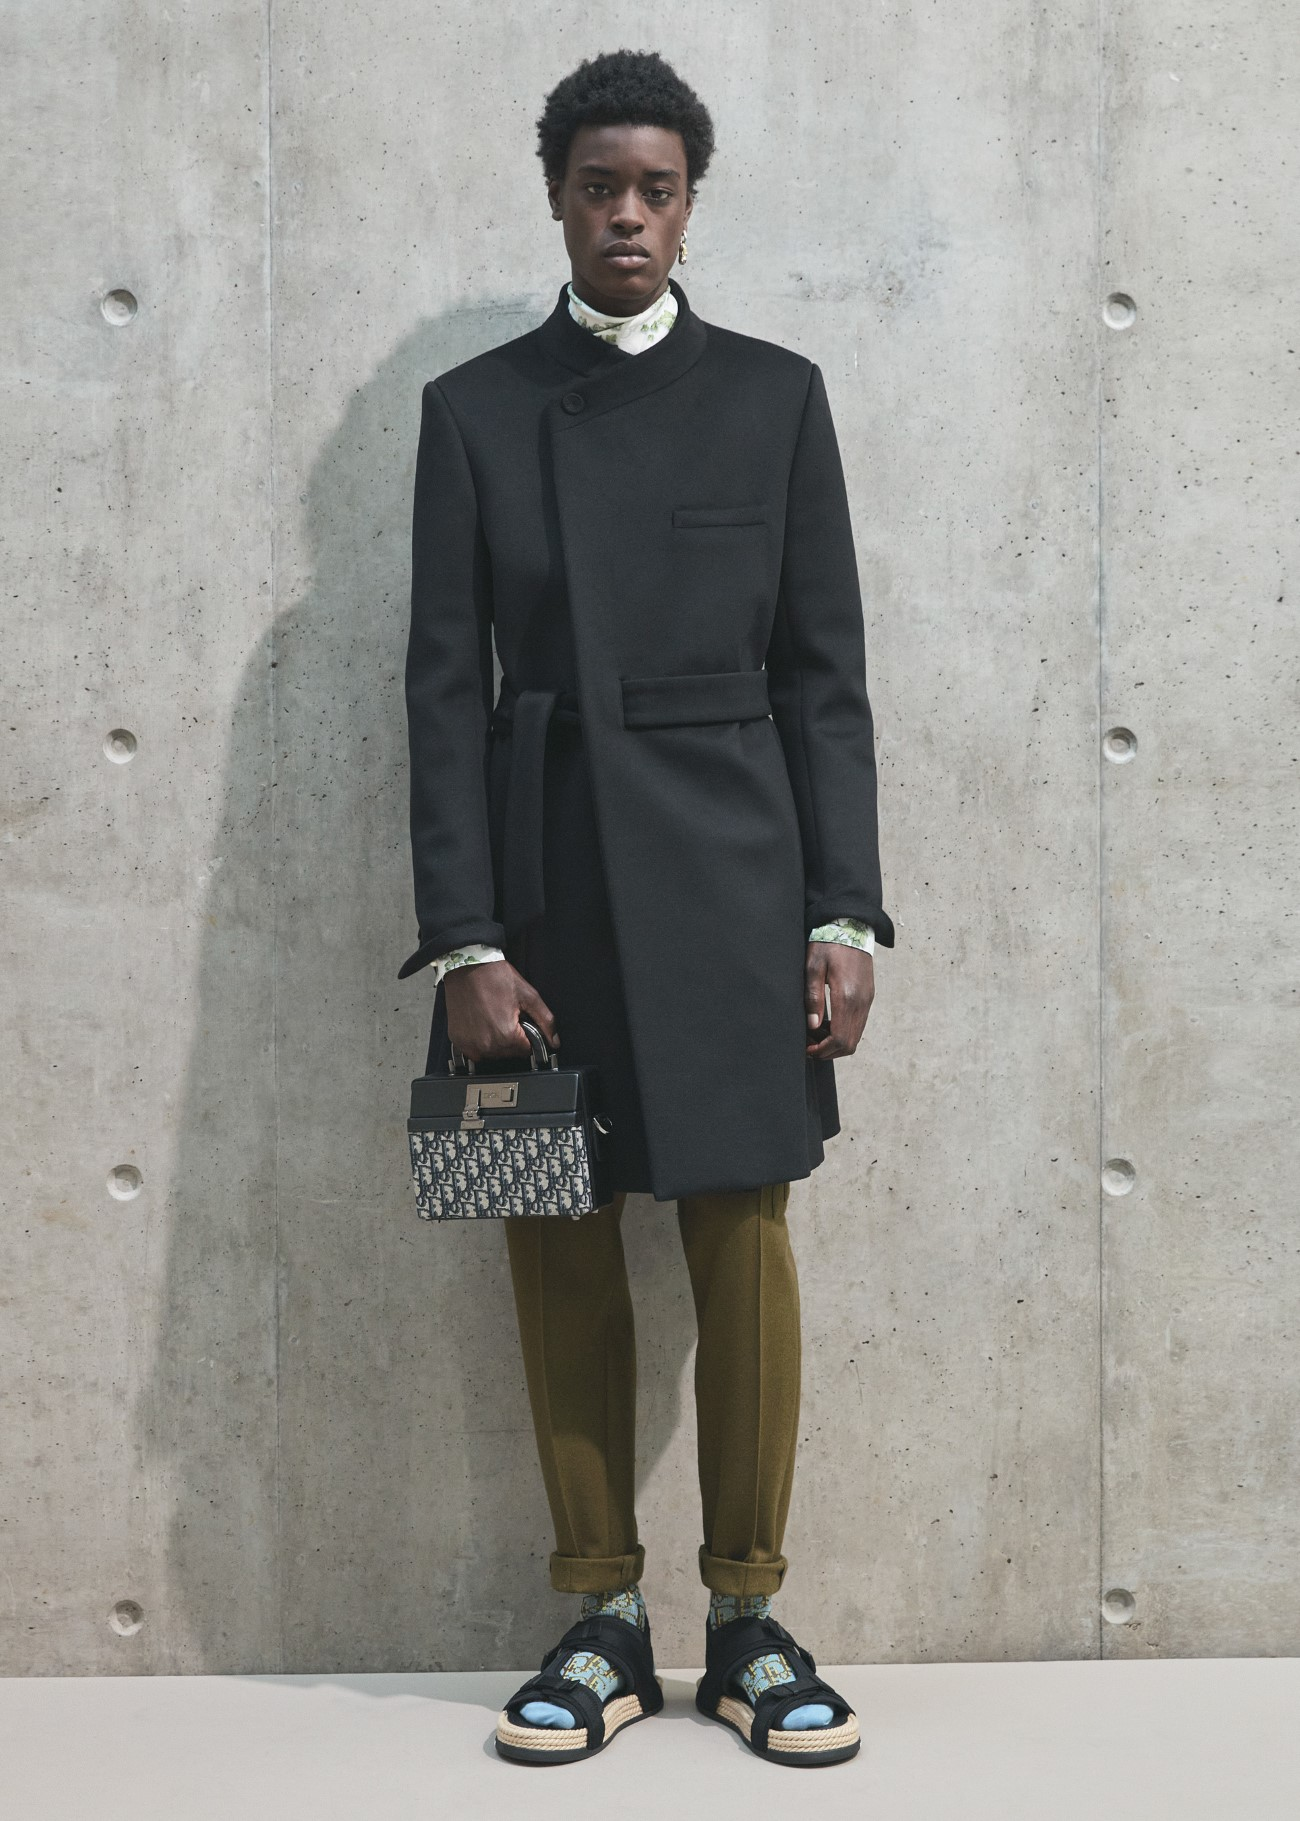 Dior Men - Spring Summer 2021 - Paris Fashion Week Men's